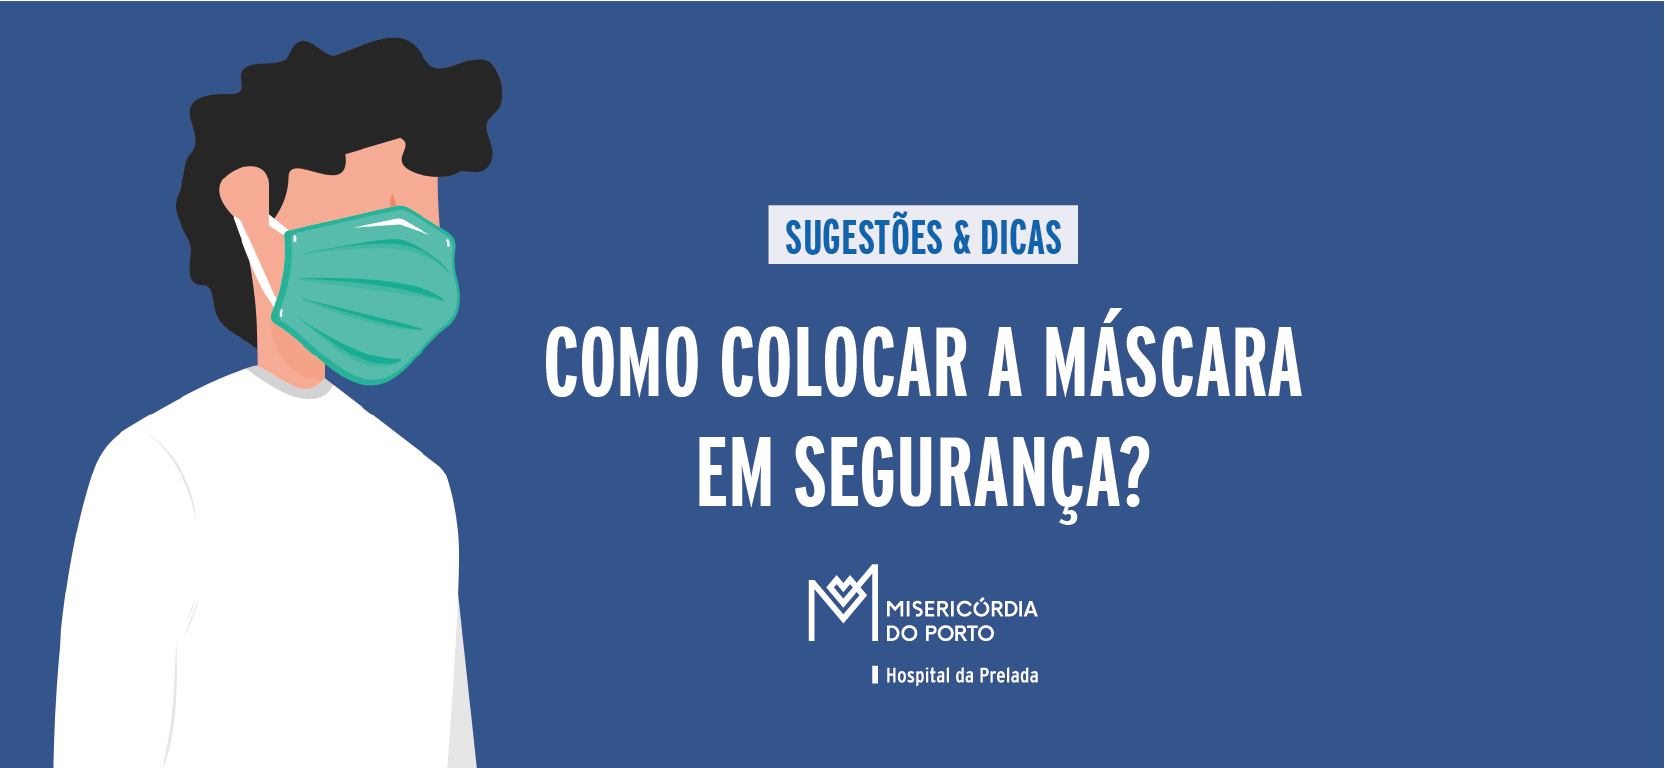 https://www.scmp.pt/assets/misc/img/noticias/2020/2020-04-17%20HP/HP%20Sugestoes%20e%20Dicas%20Mascara%20BANNER_1%20bannersite%20-%20cuide.png